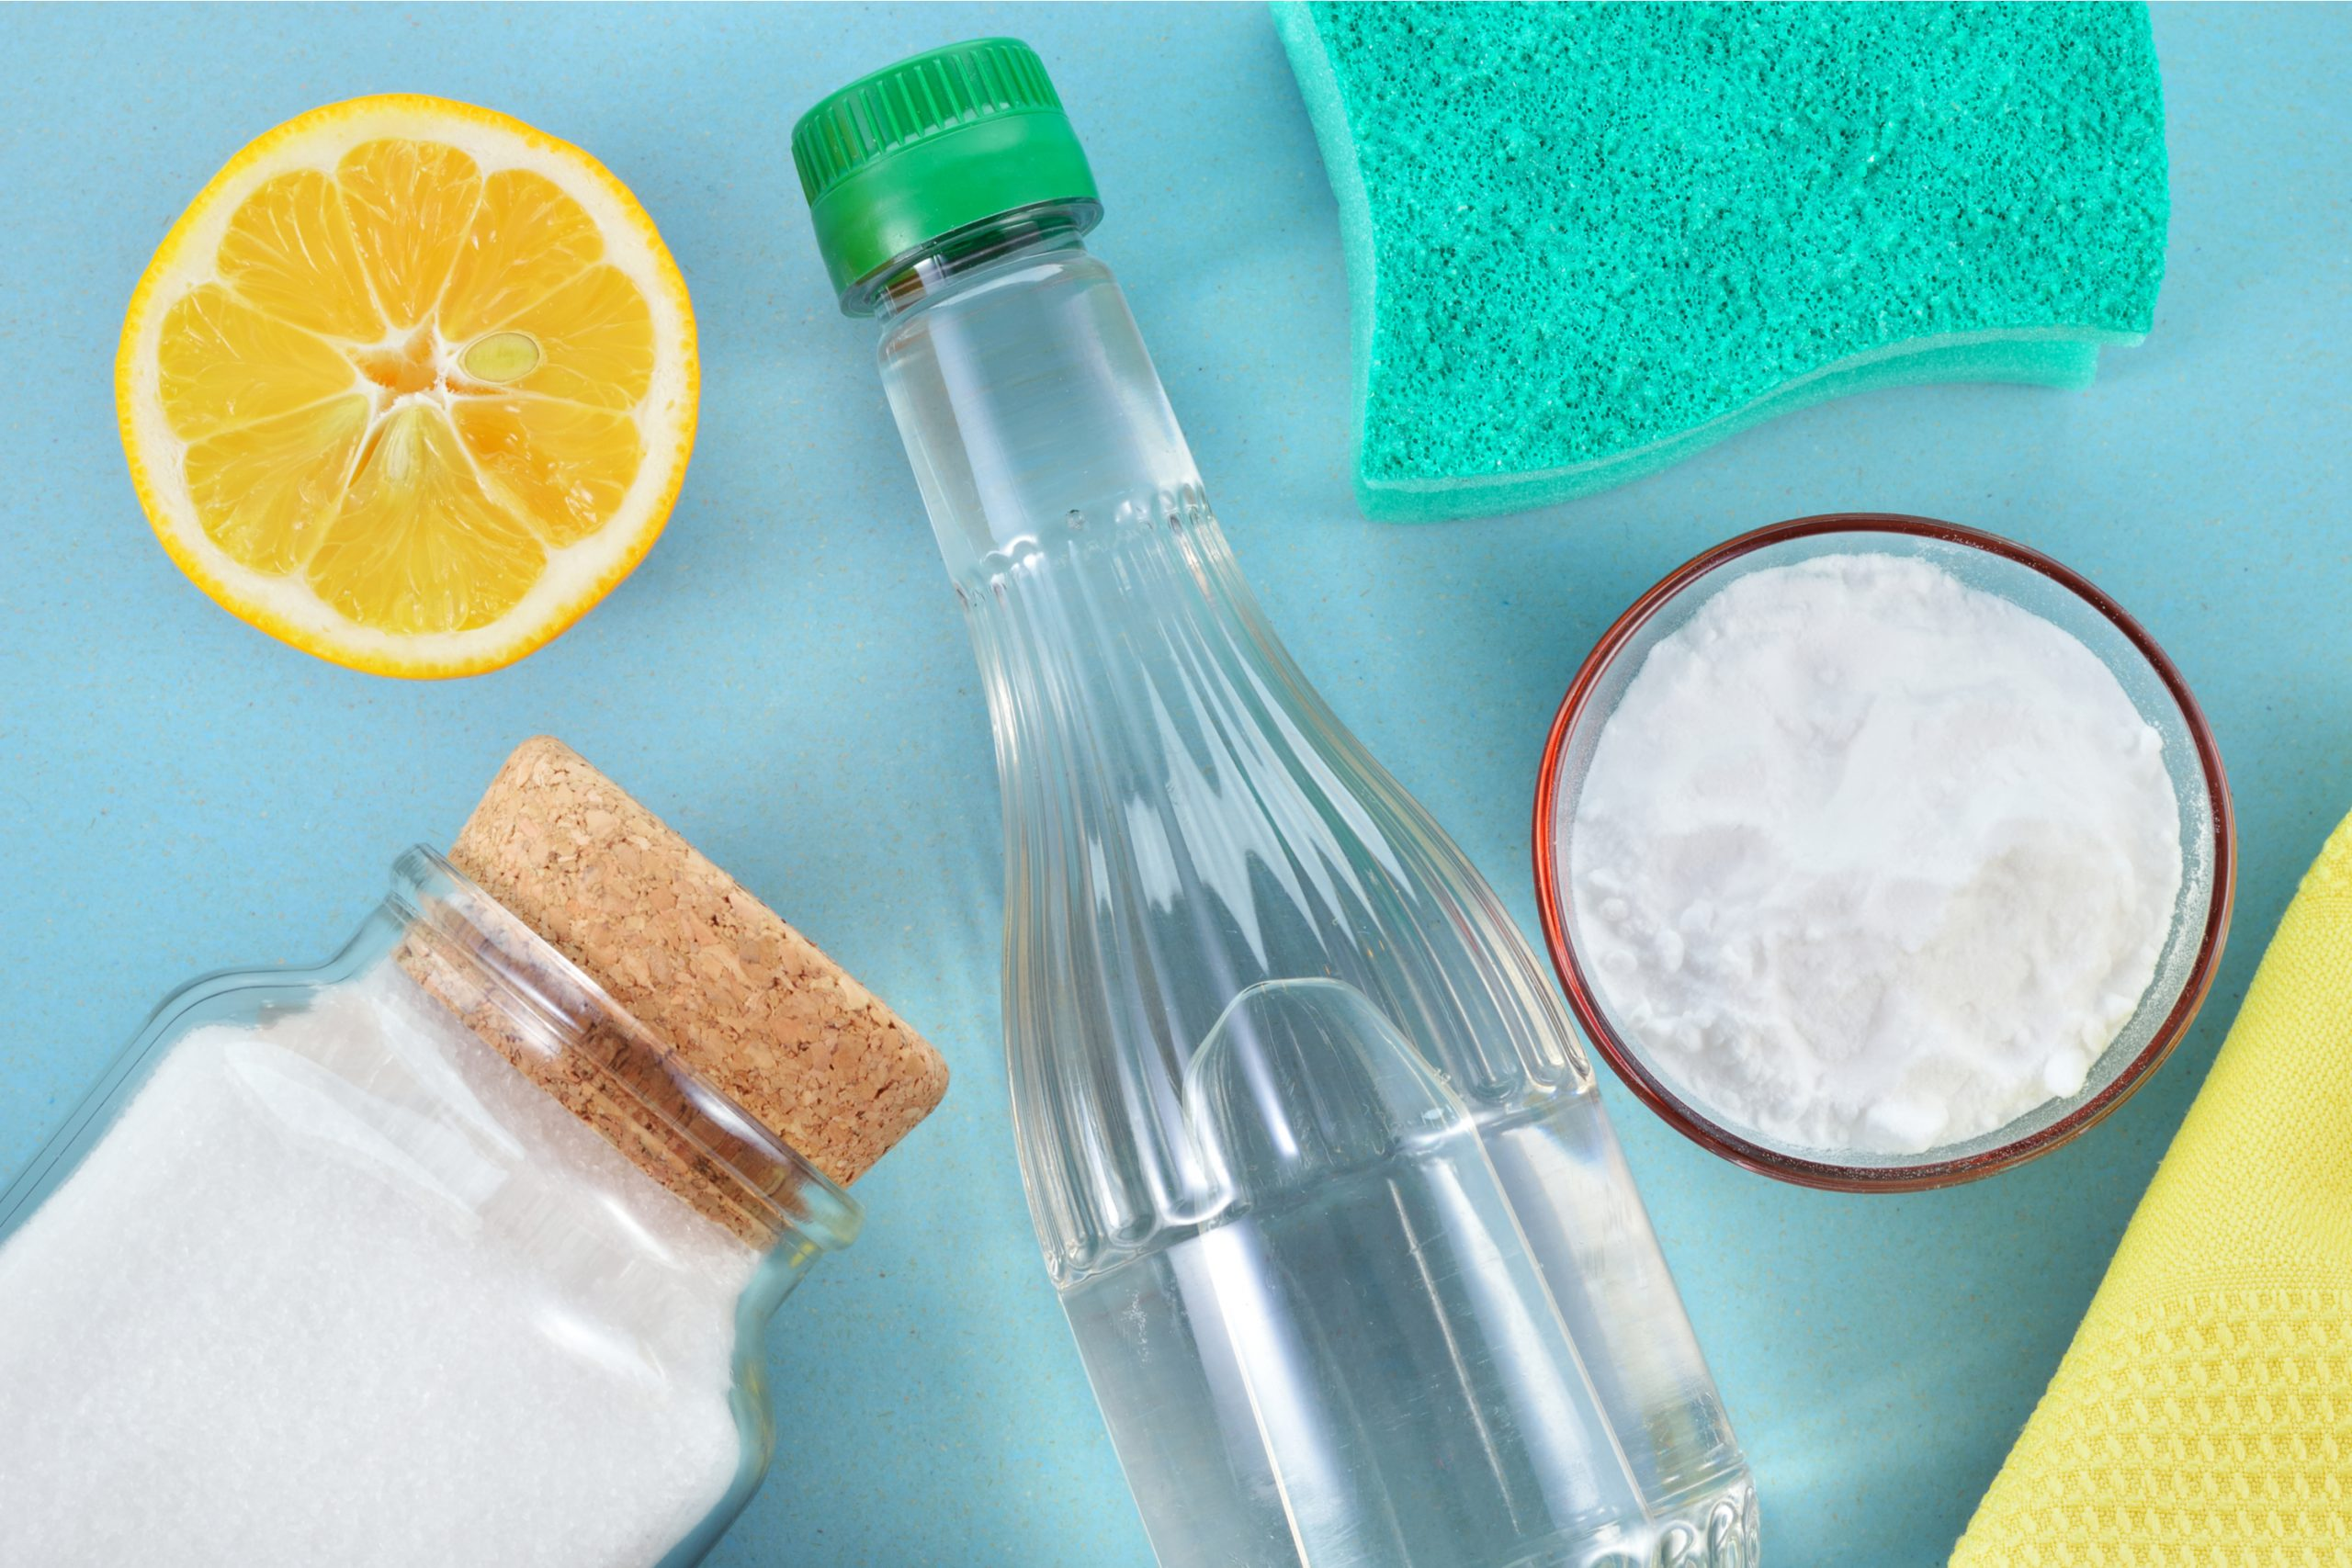 Do you try to use natural cleaning products as much as possible? Do you know that vinegar alone can clean your toilet? Check out all the things you can clean with vinegar.